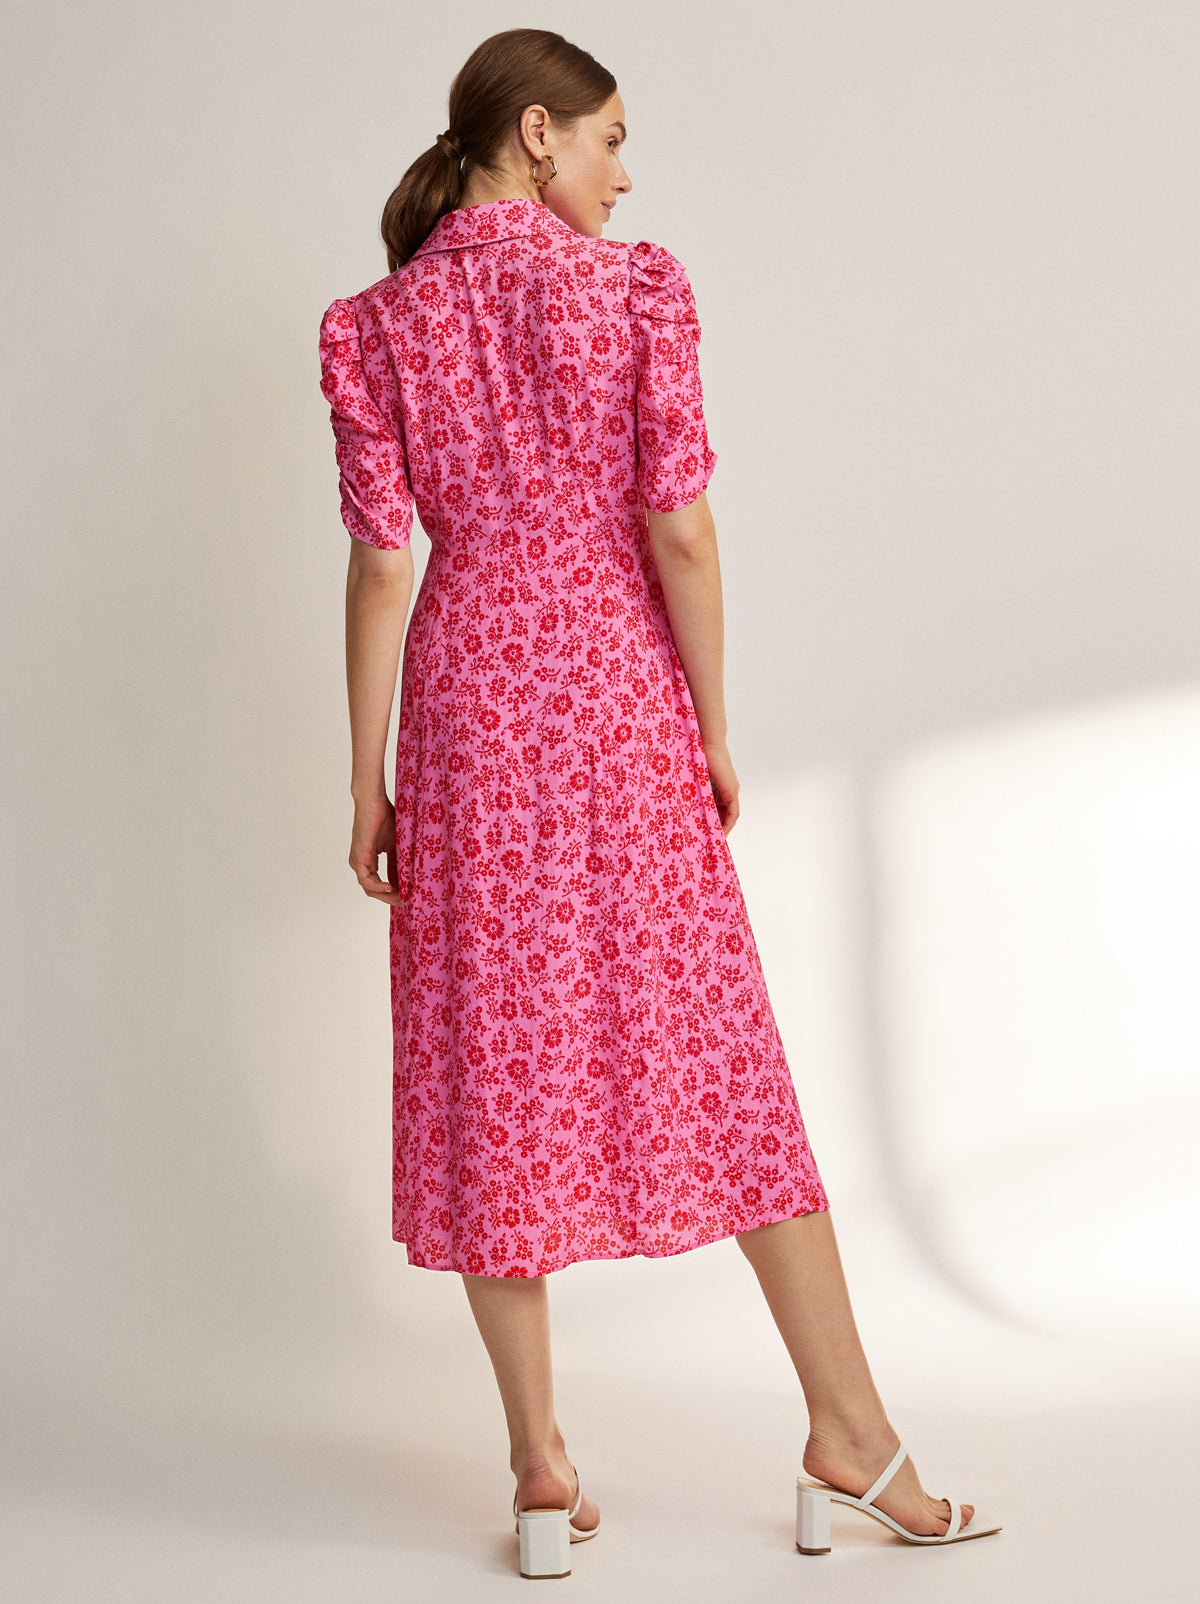 Maguire Pink Ditzy Floral Dress by KITRI Studio